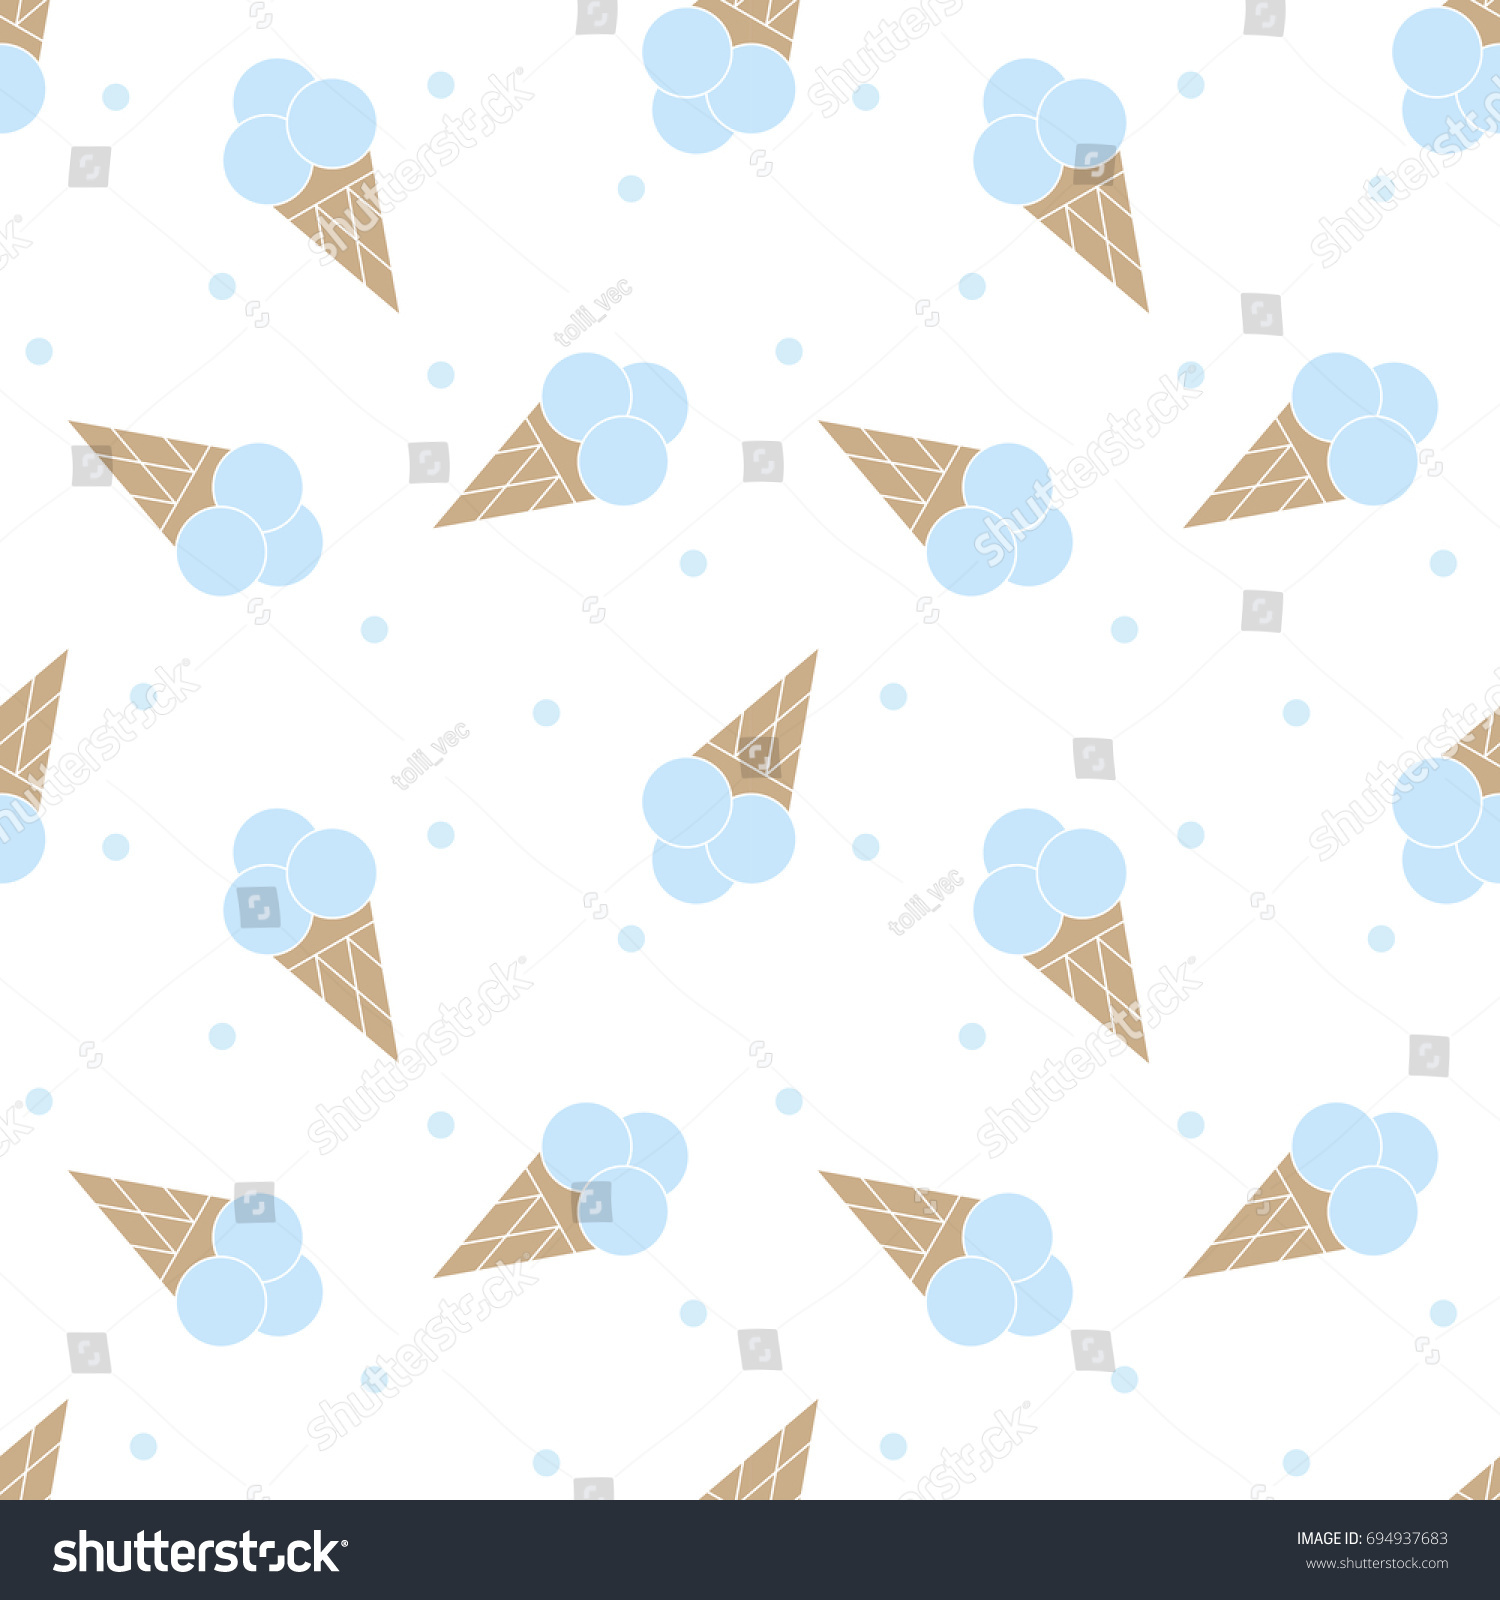 Seamless pattern with ice cream. Baby cartoon background. Good for birthday, wallpaper,